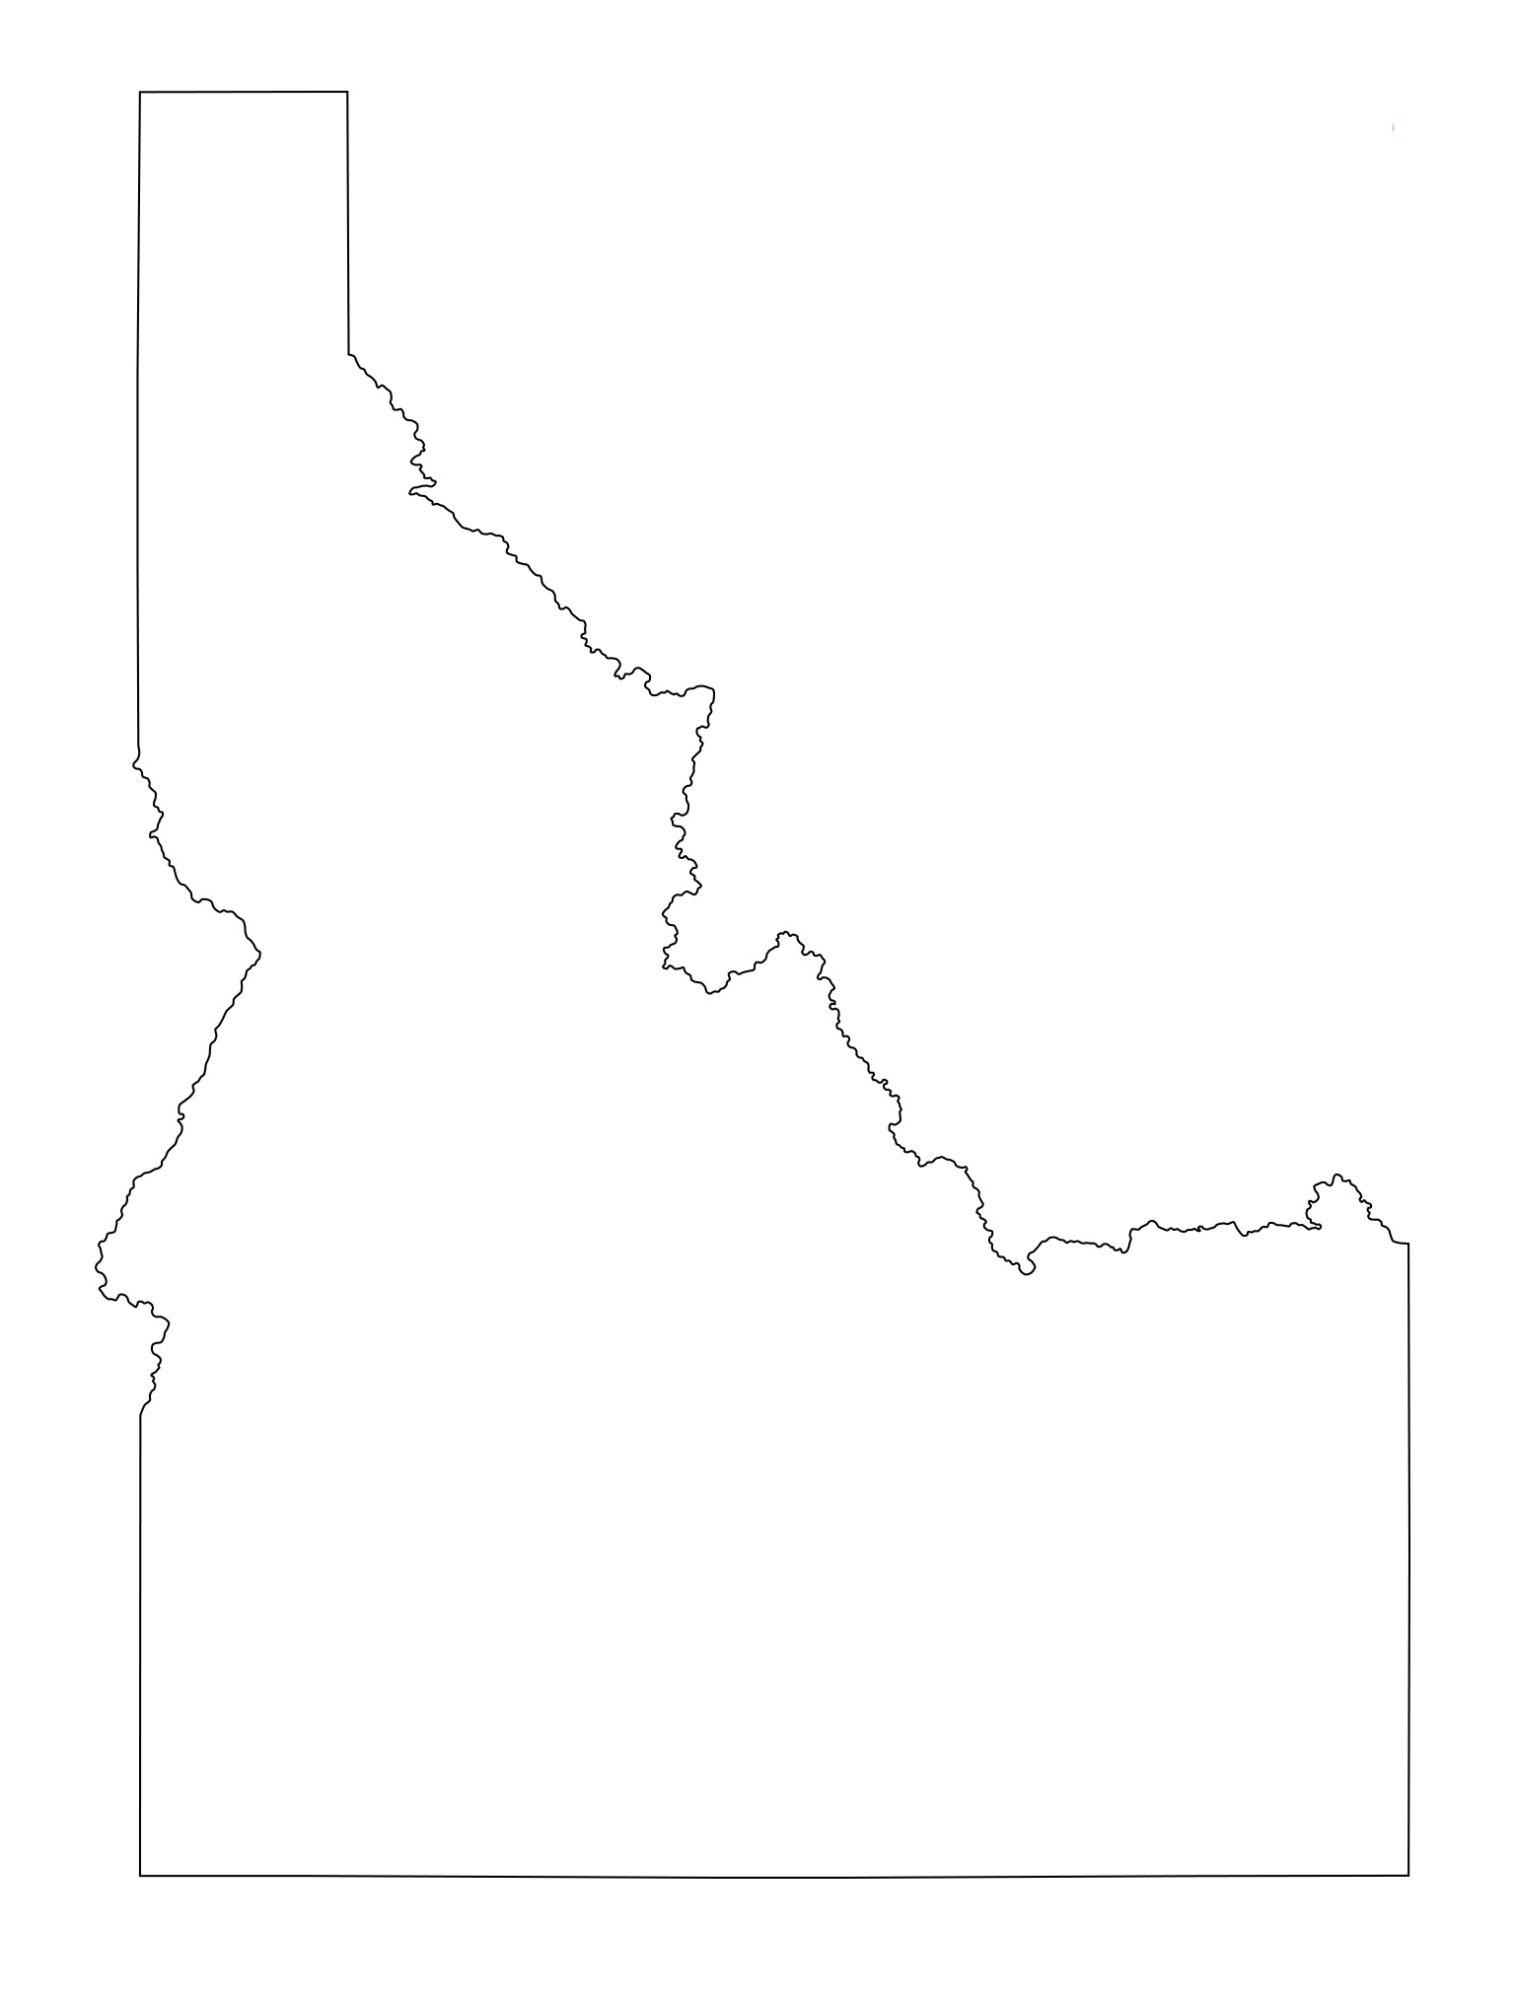 Idaho Blank Outline Map   Large Printable and Standard Map 12